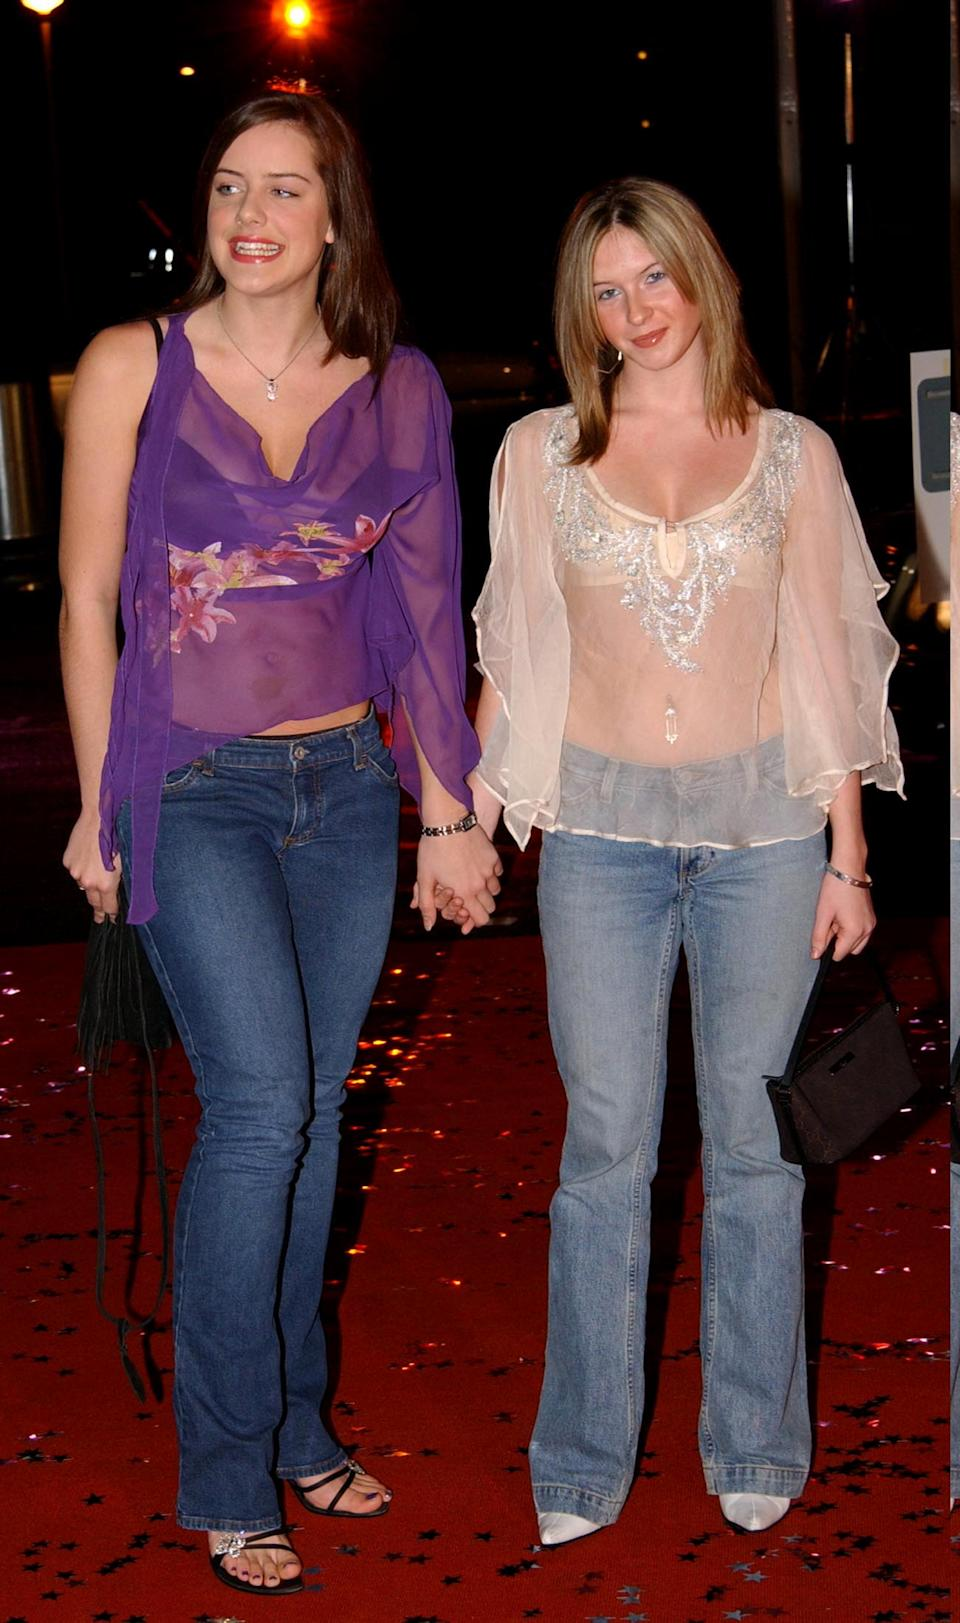 EastEnders actresses Michelle Ryan and Brooke Kinsella arriving for the recording of 'TV Moments 2002' at BBC TV Centre in West London. (Photo by Andy Butterton - PA Images/PA Images via Getty Images)